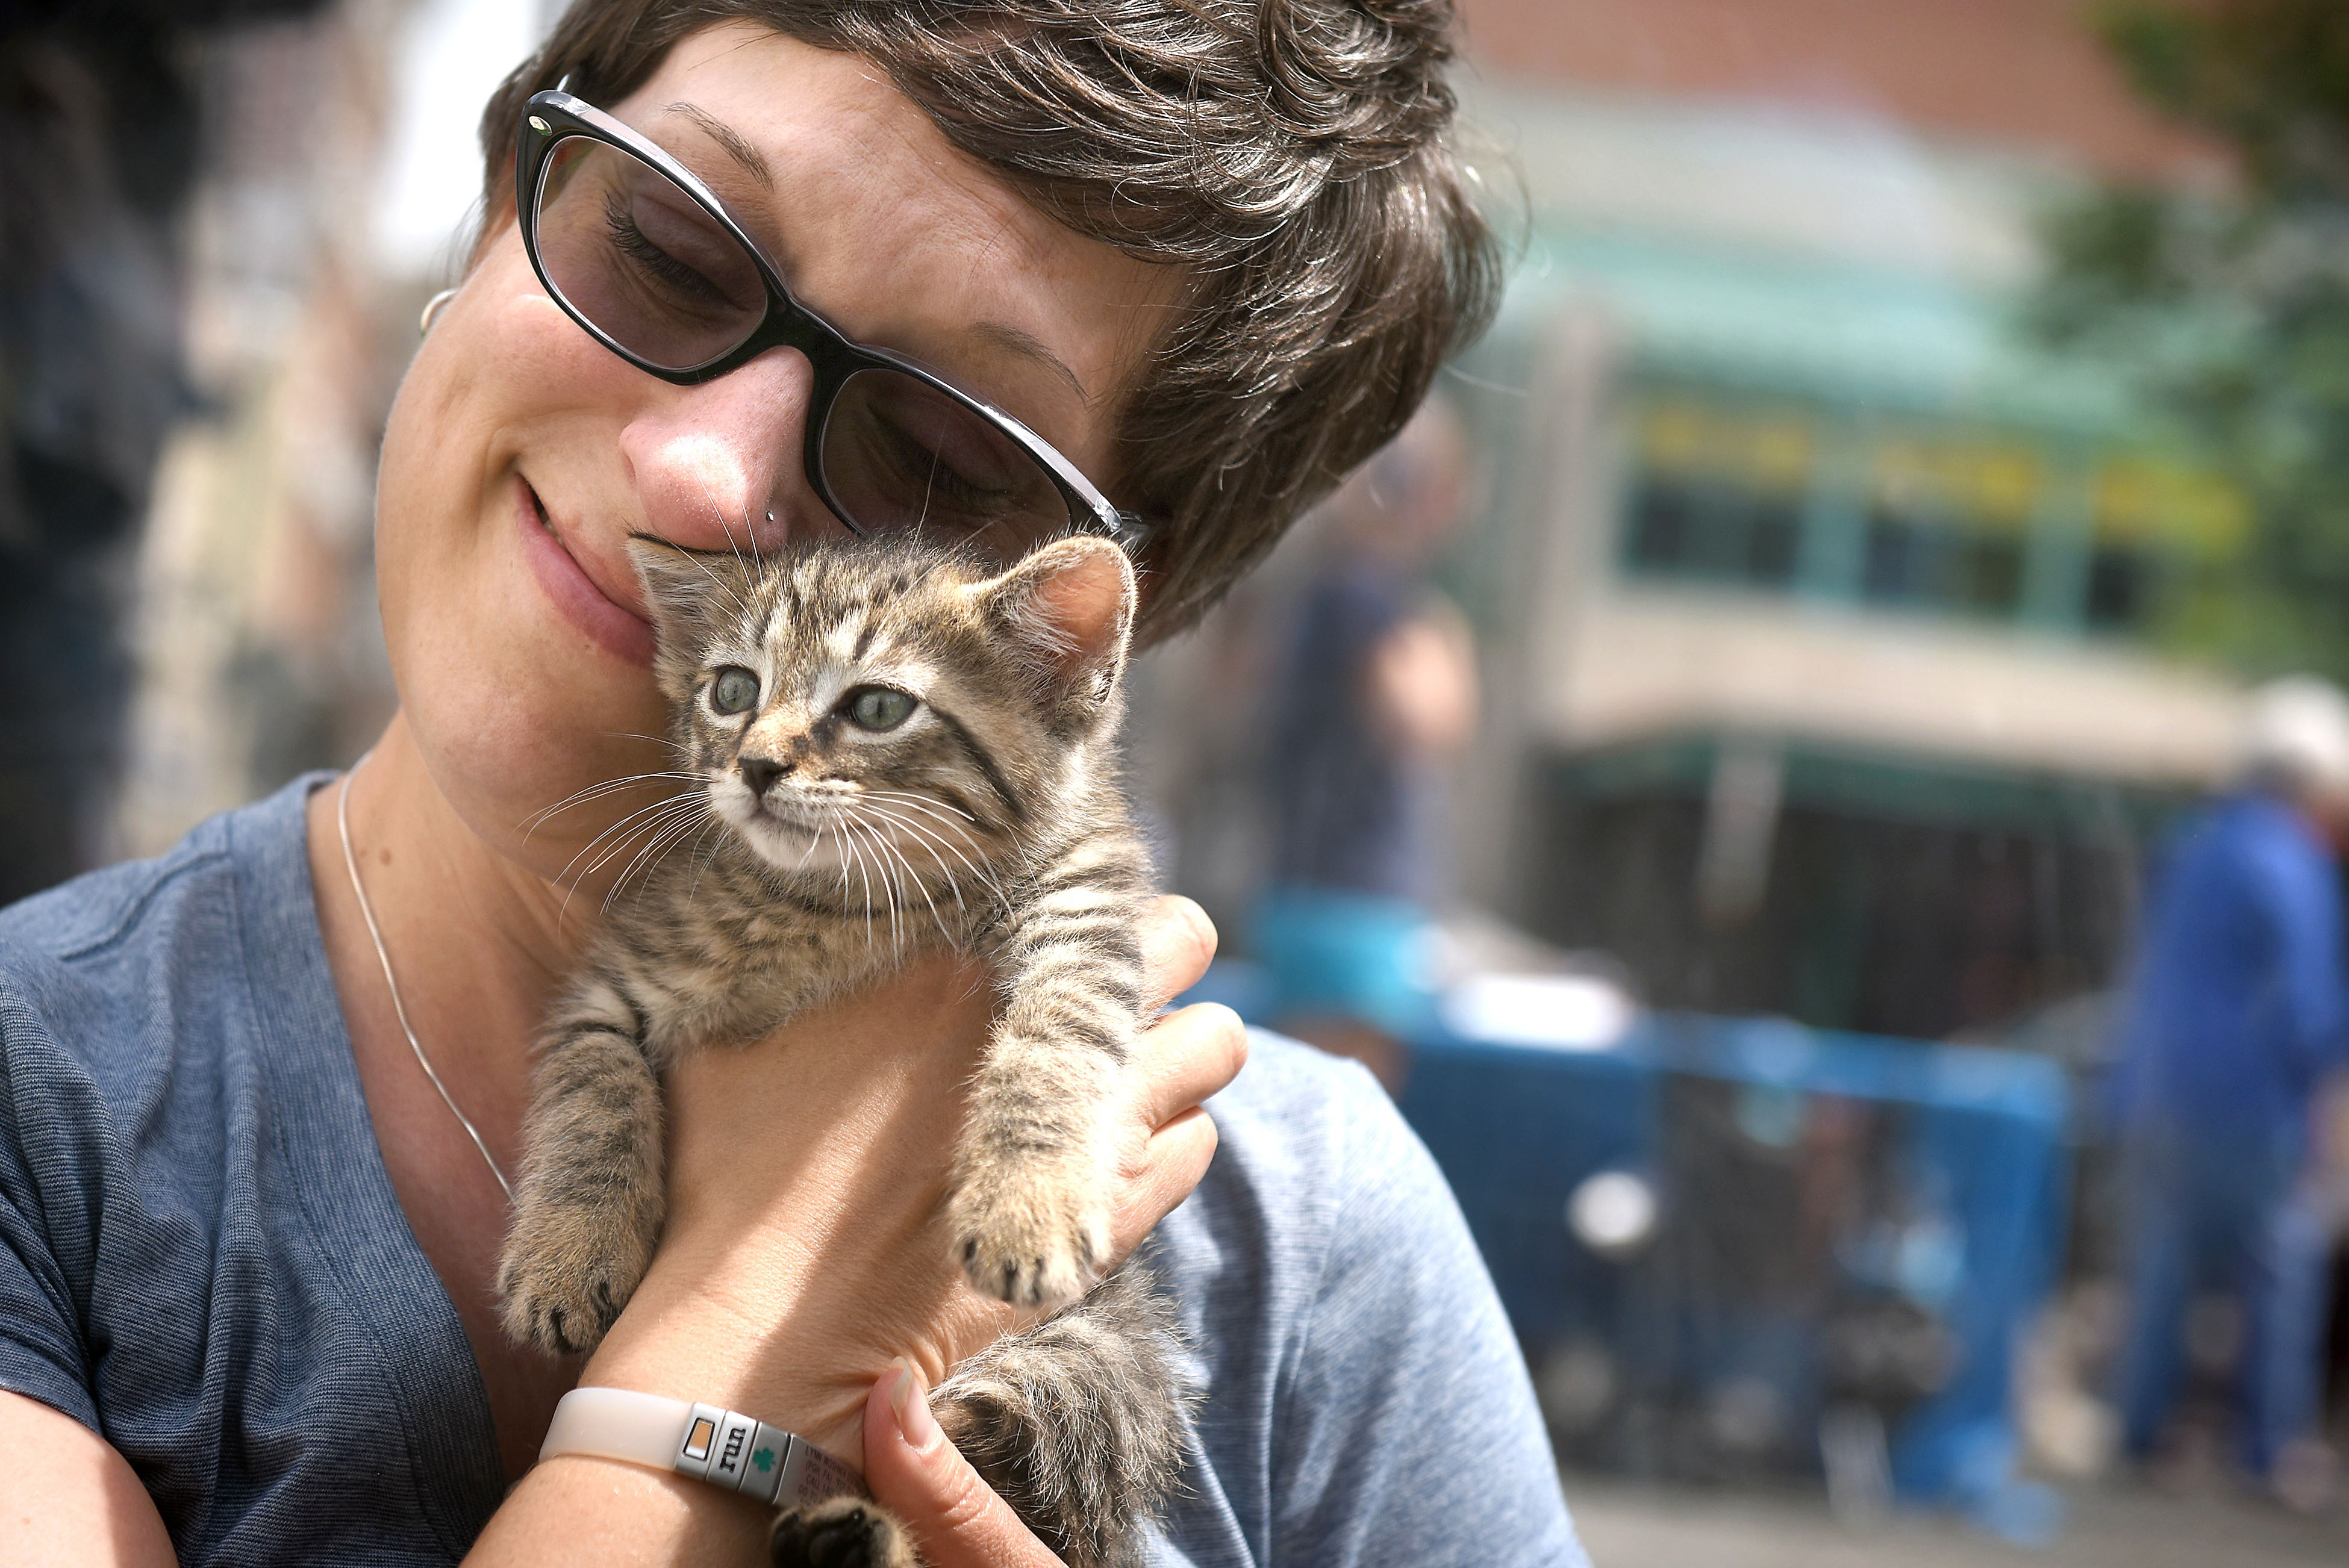 Lynn O'Donnell of the South Side takes a break from her job at PNC Bank to hold one of several kittens brought to Market Square by Animal Friends in an effort to lower stress levels off Downtown office workers.